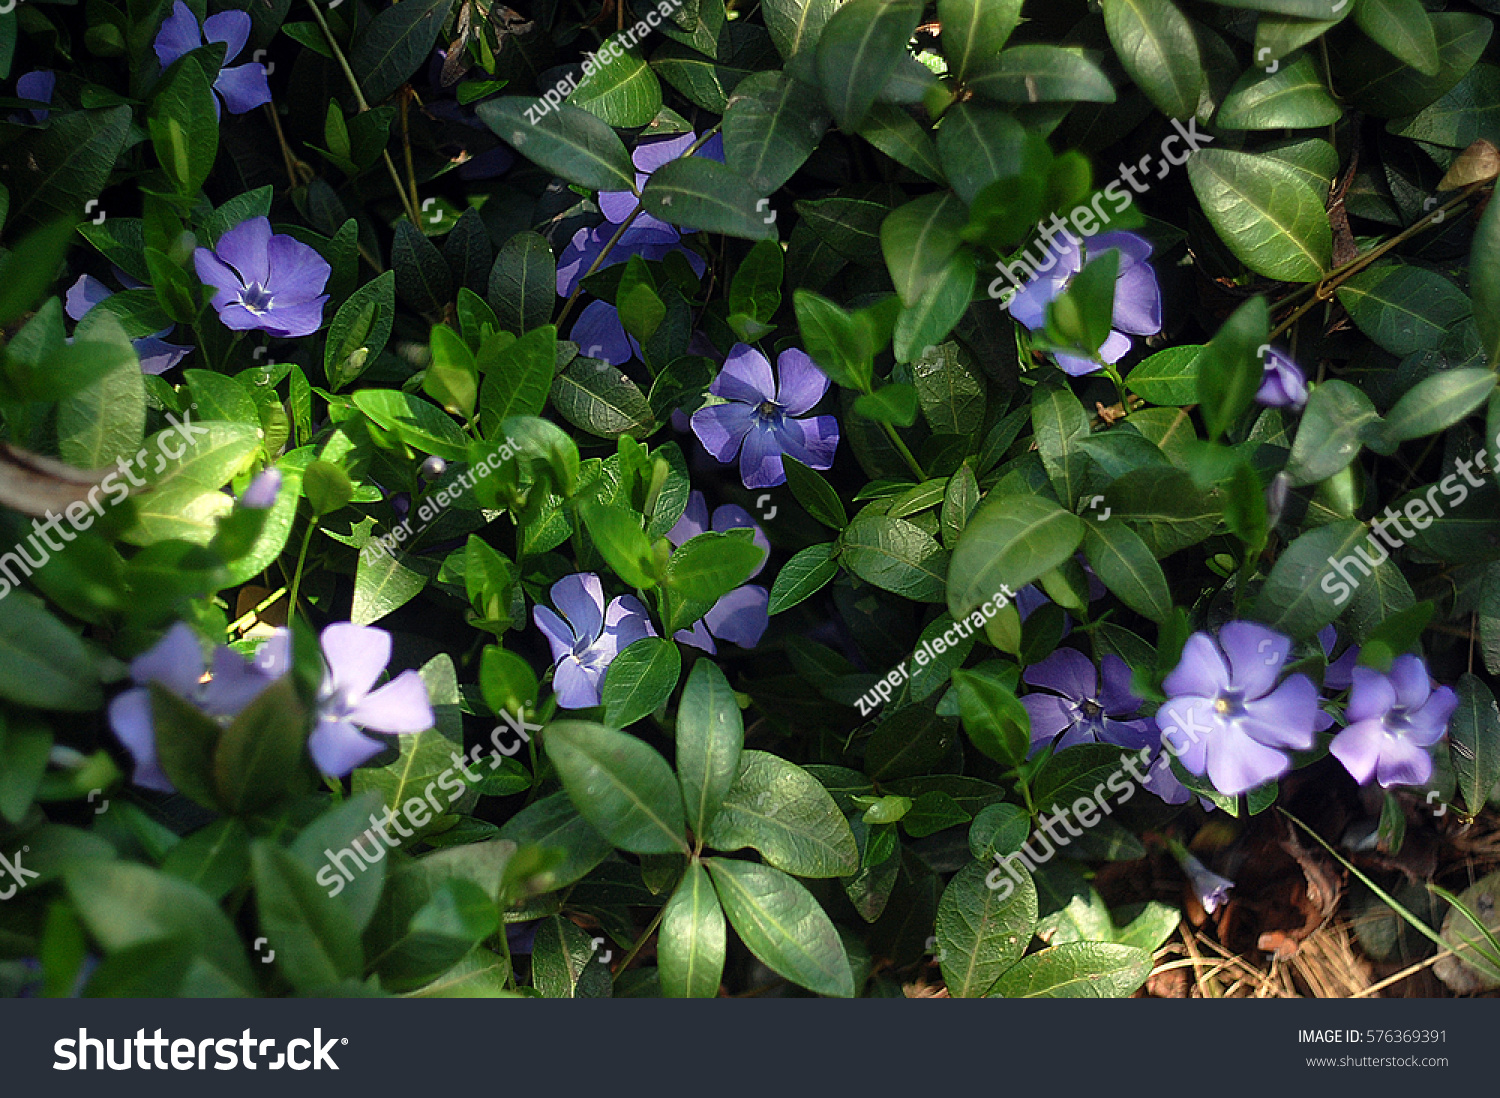 Vinca minor fivepetalled periwinkle plant green stock photo royalty periwinkle plant with green leaves and blue flowers izmirmasajfo